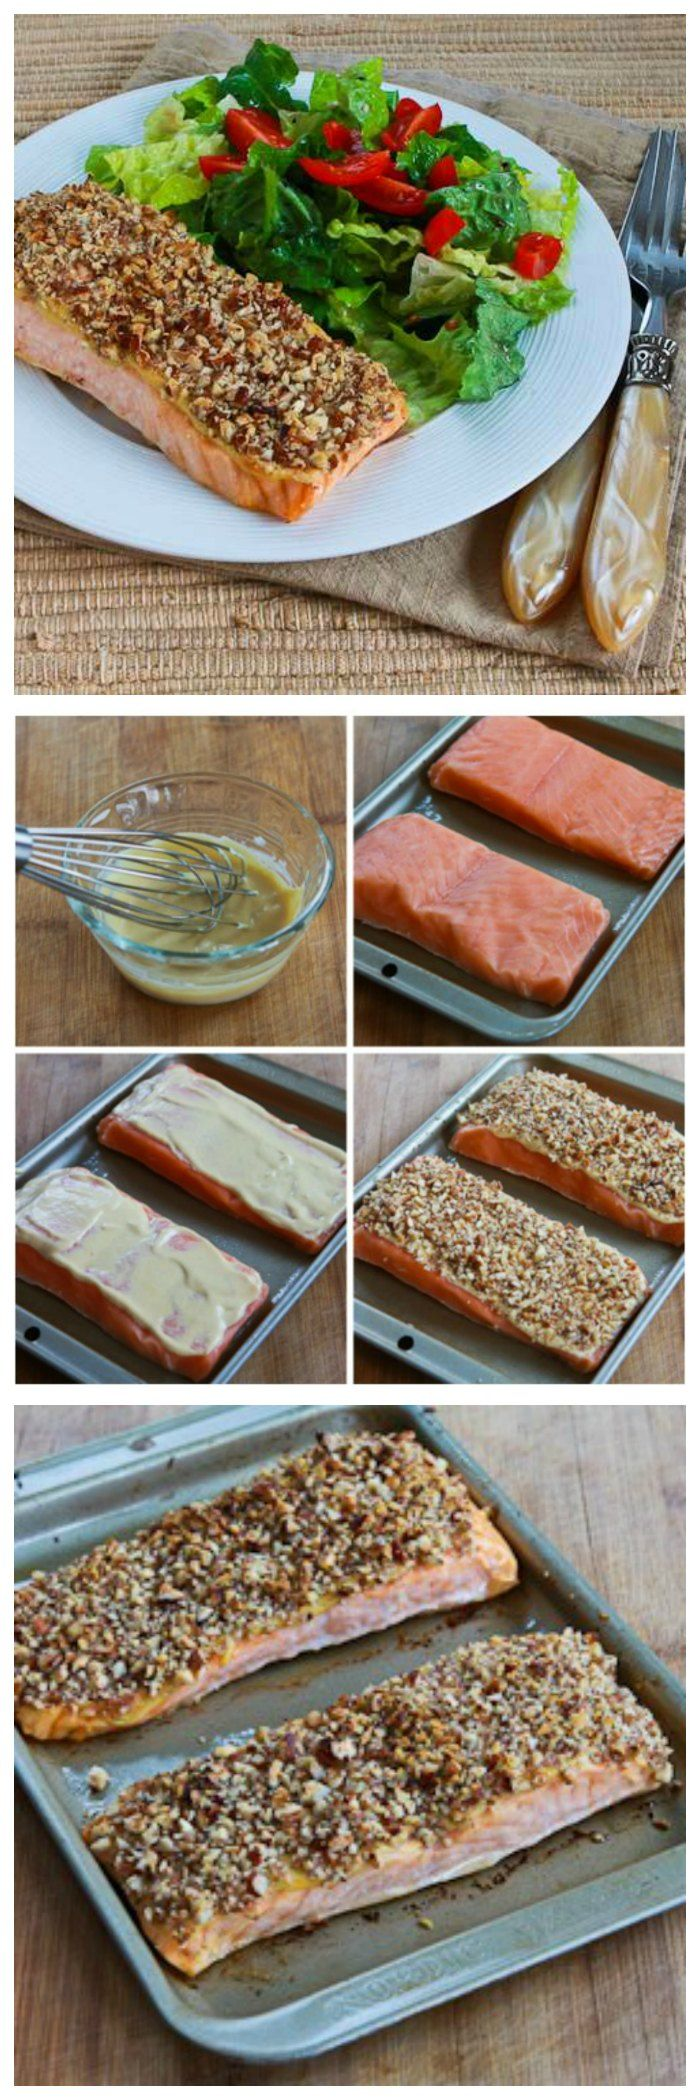 Pecan-Crusted Dijon Salmon is perfect for a special meal, and this recipe is as easy as it is delicious.  This is low-carb, gluten-free, and SBD Phase One and if you use approved mayo it can easily be Paleo.  [from KalynsKitchen.com]